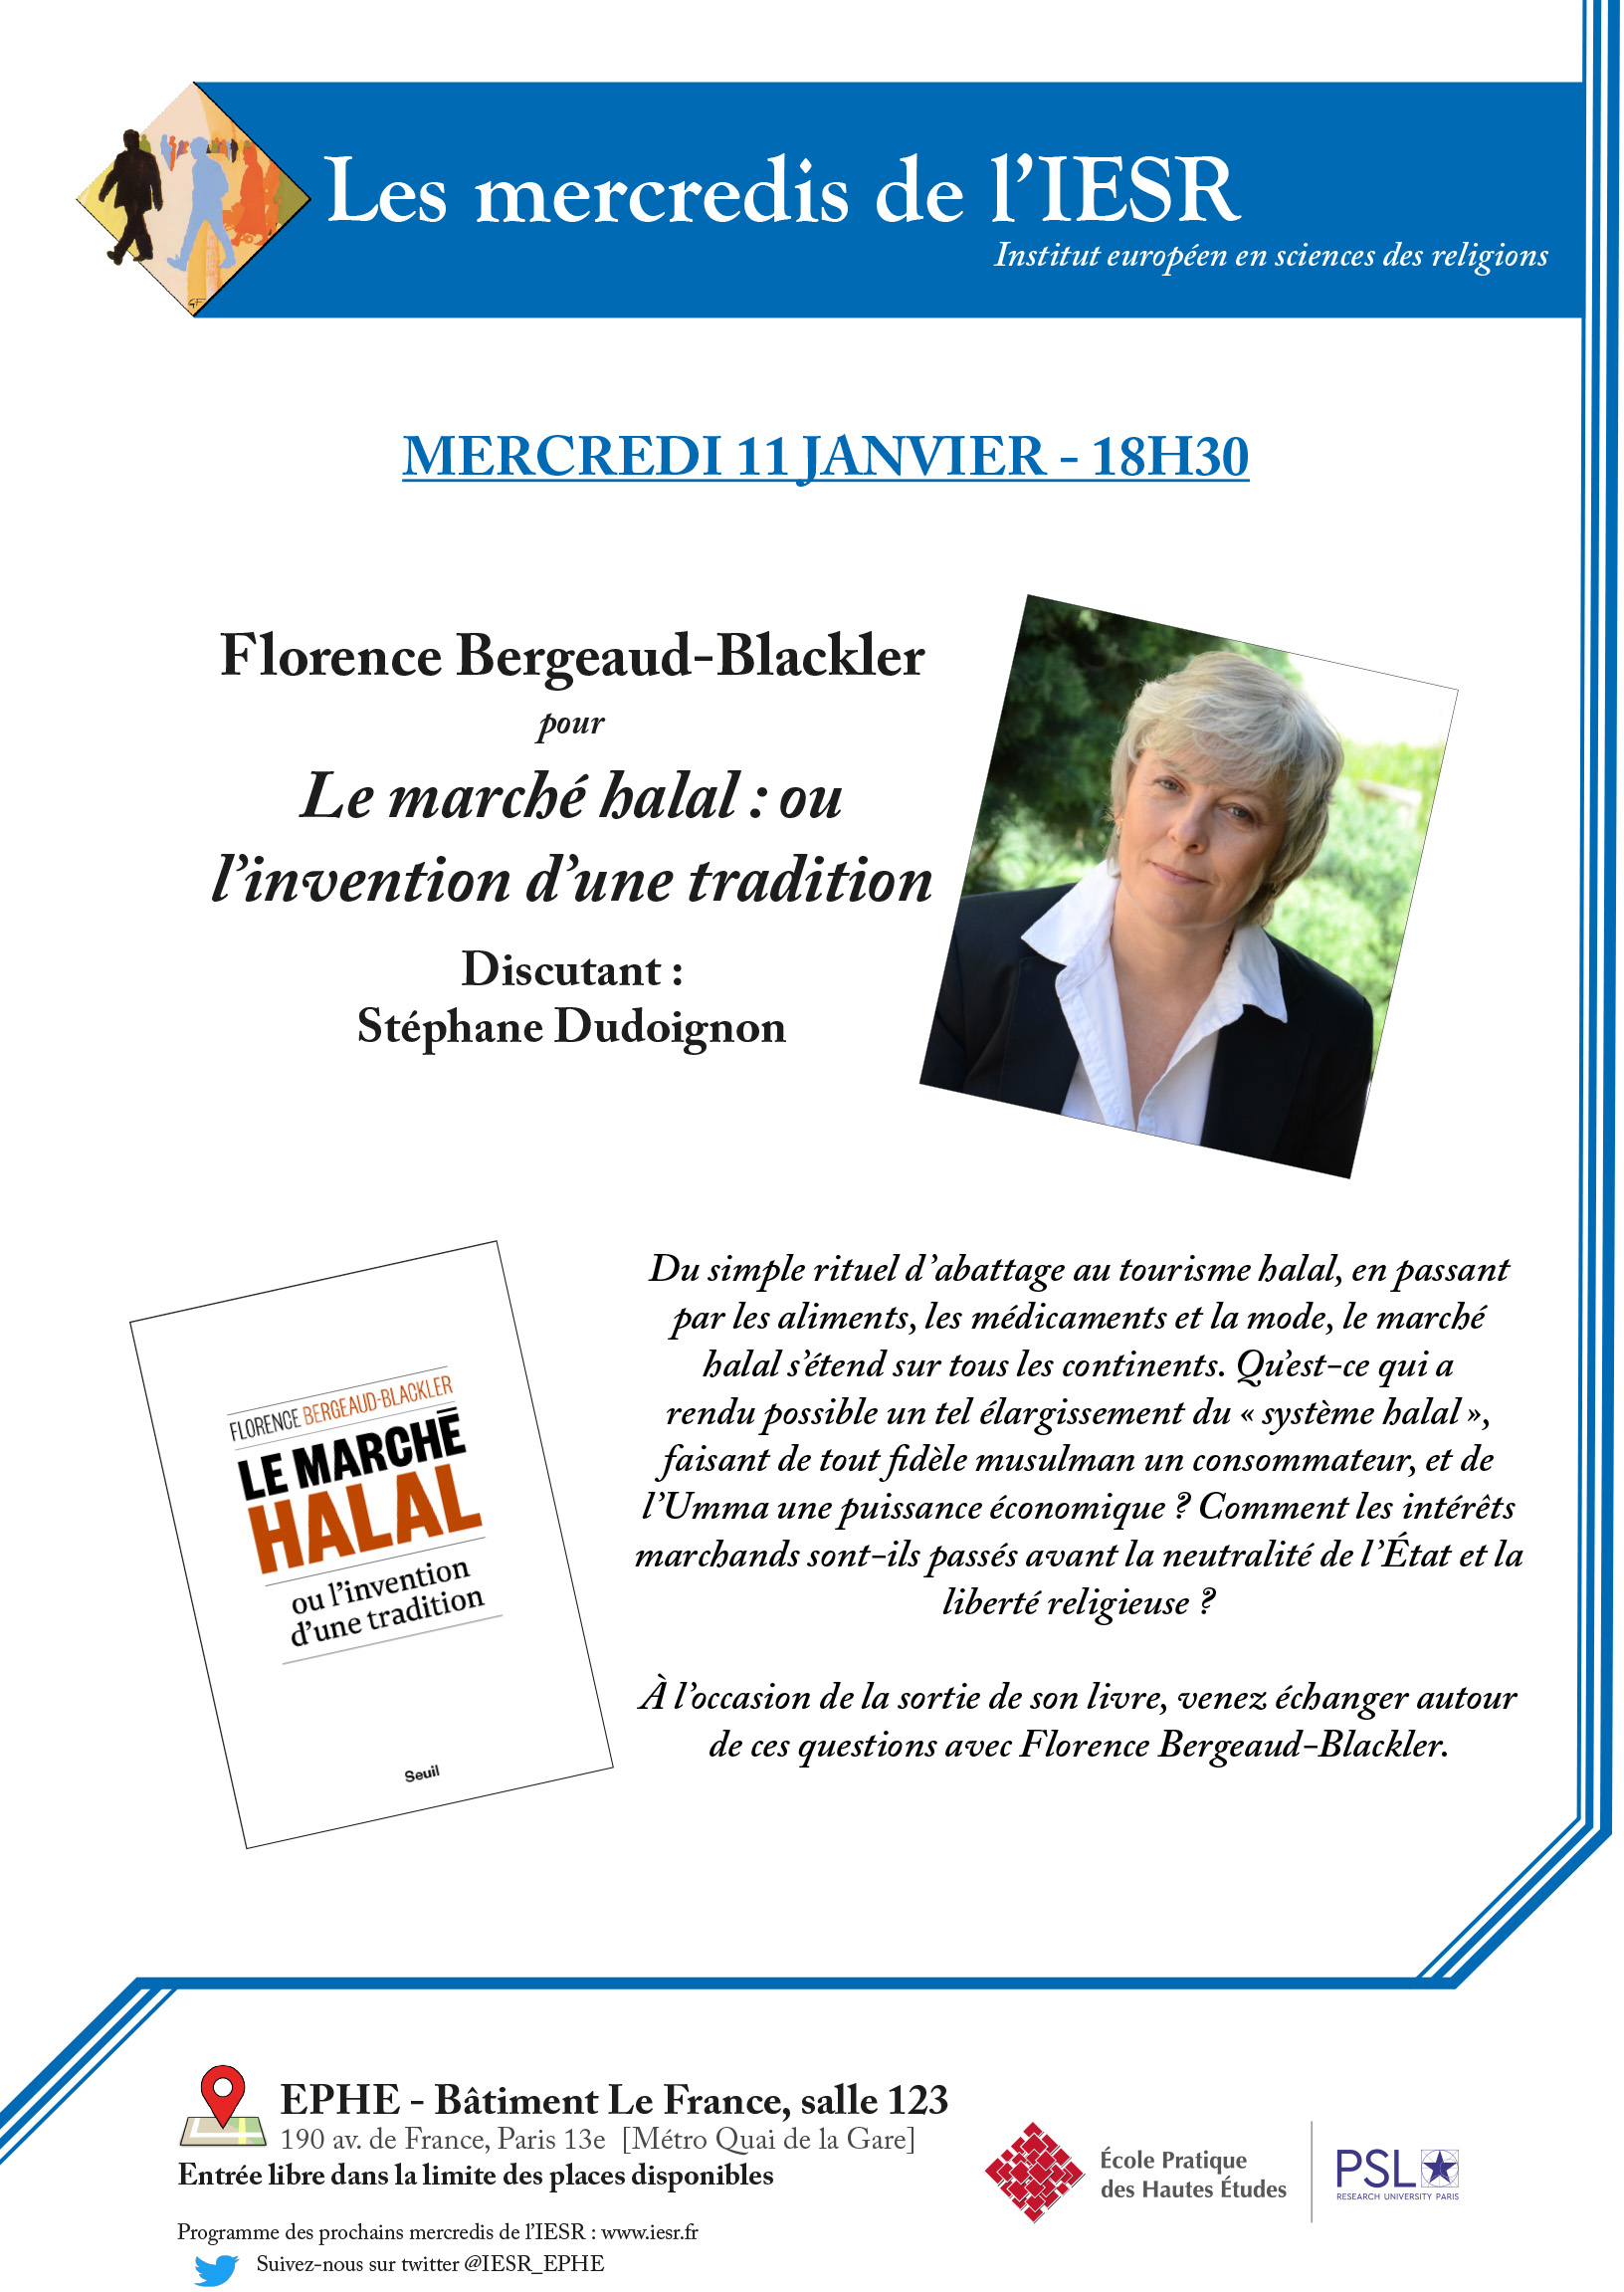 miesr-bergeaud-blackler-11jan-a4